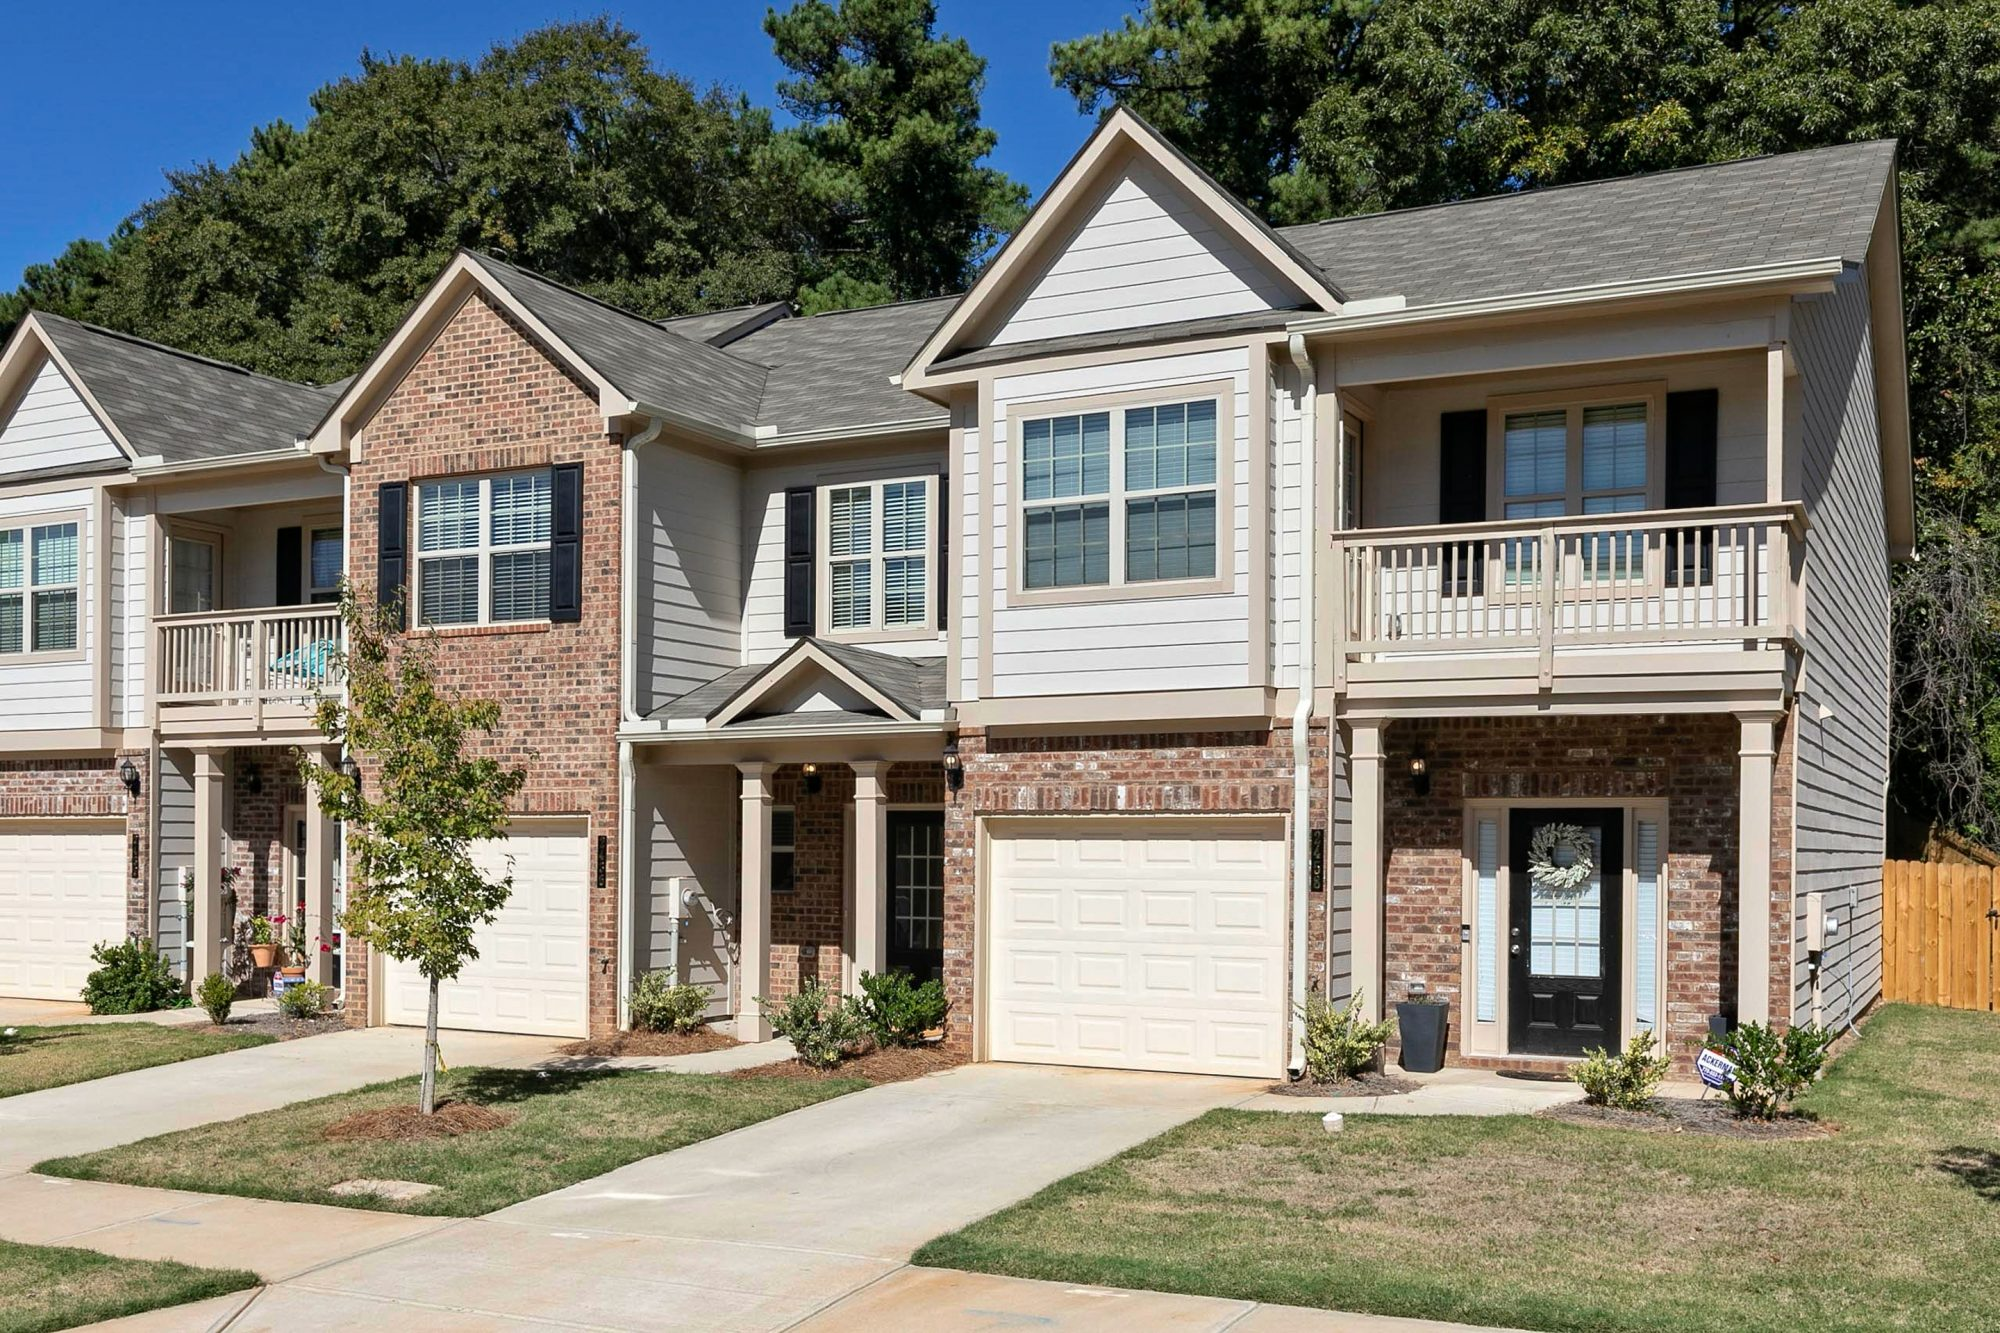 townhomes in austell ga at kings lake townhomes